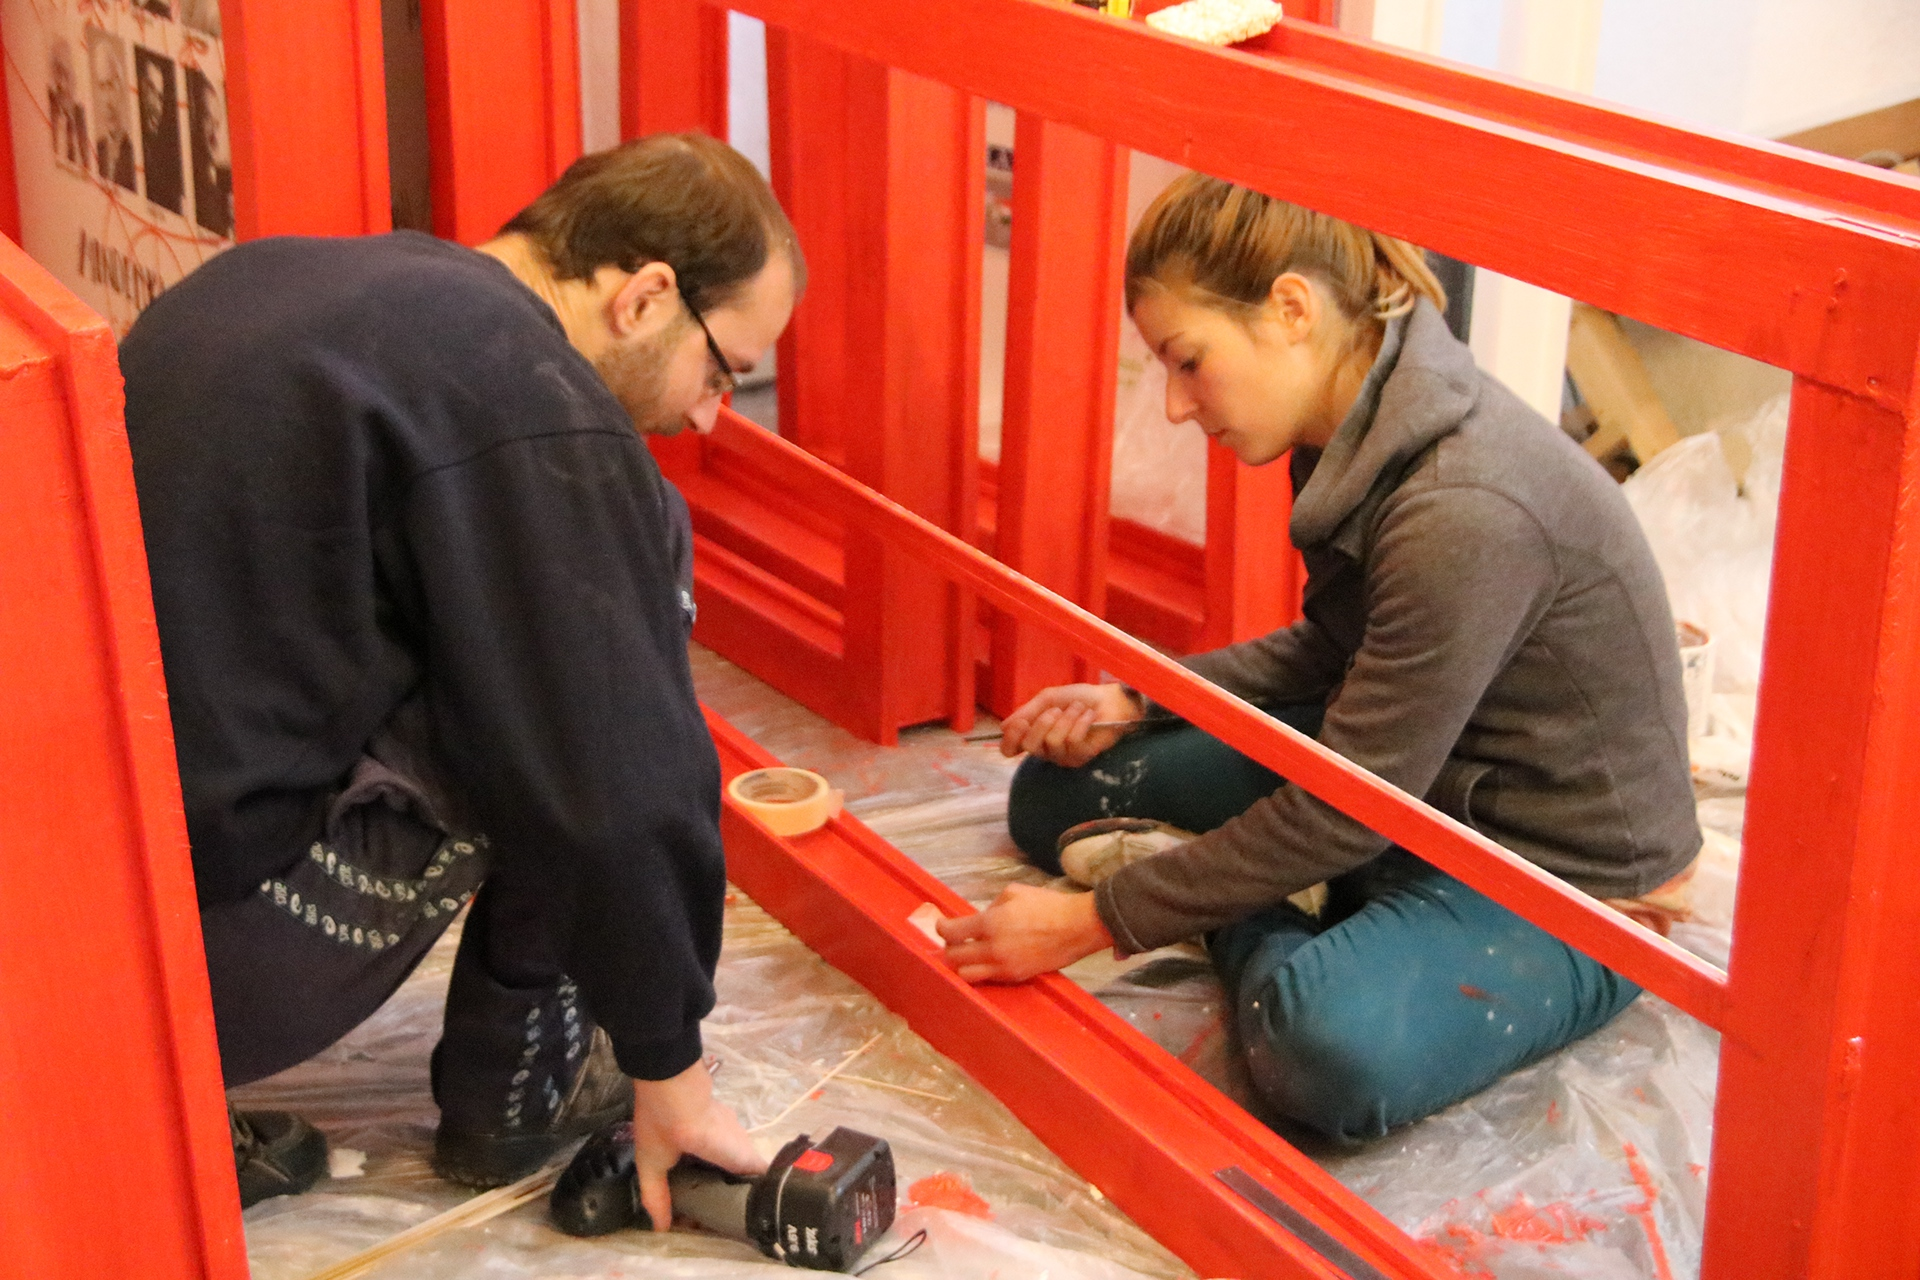 people painting a door frame with red cover paint